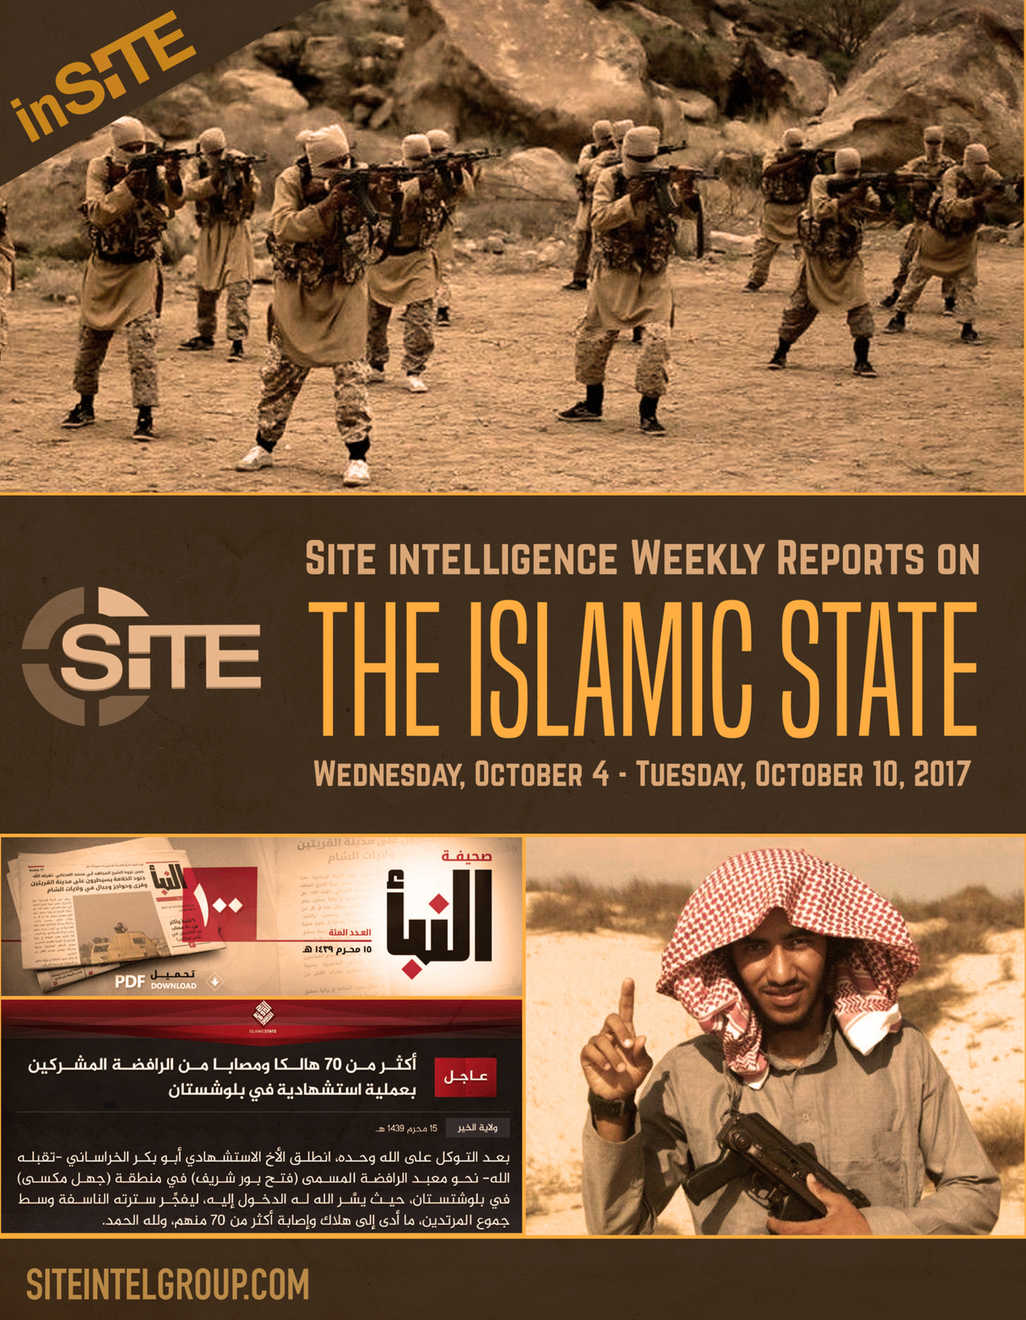 Weekly inSITE on the Islamic State, October 4 -10